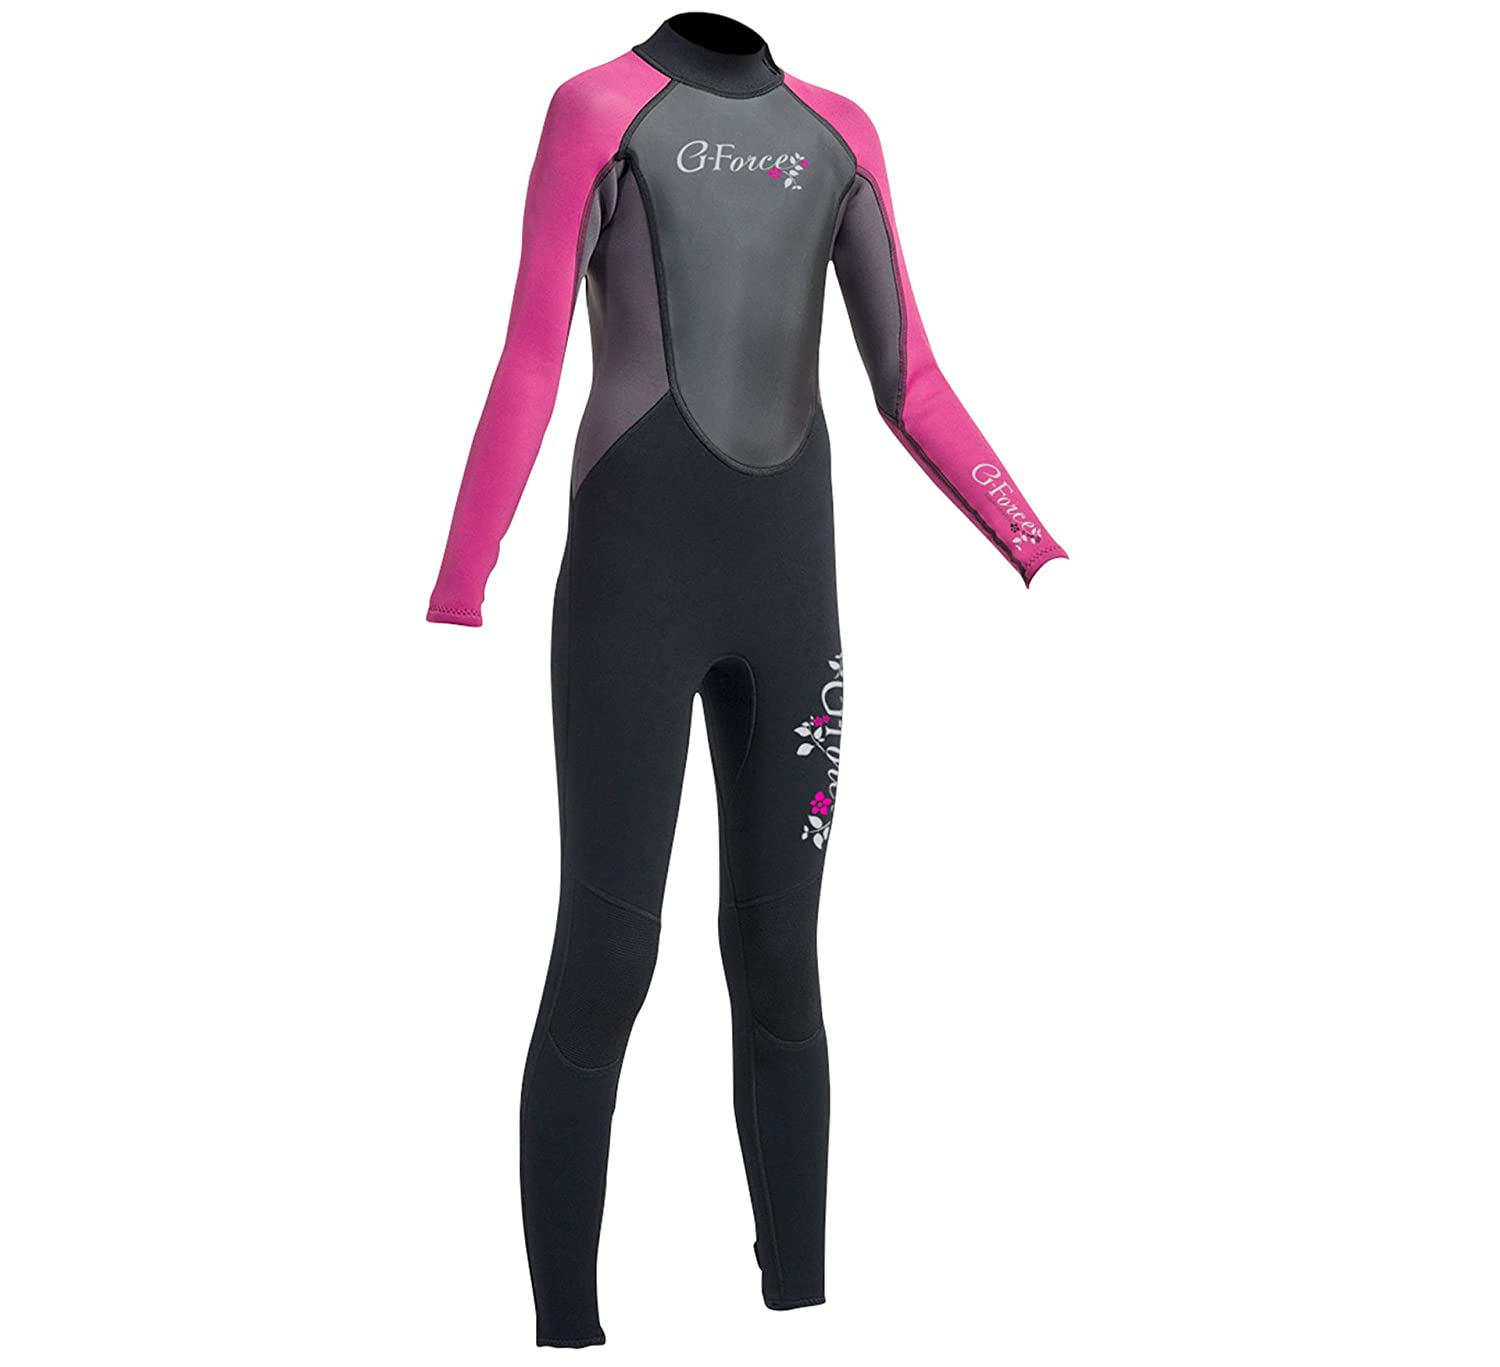 a66bfbda98 Gul G-Force Junior 3mm Flatlock Wetsuit in Black and Pink - Girls -  Flexible Full Suit For All Watersports - Easy Stretch